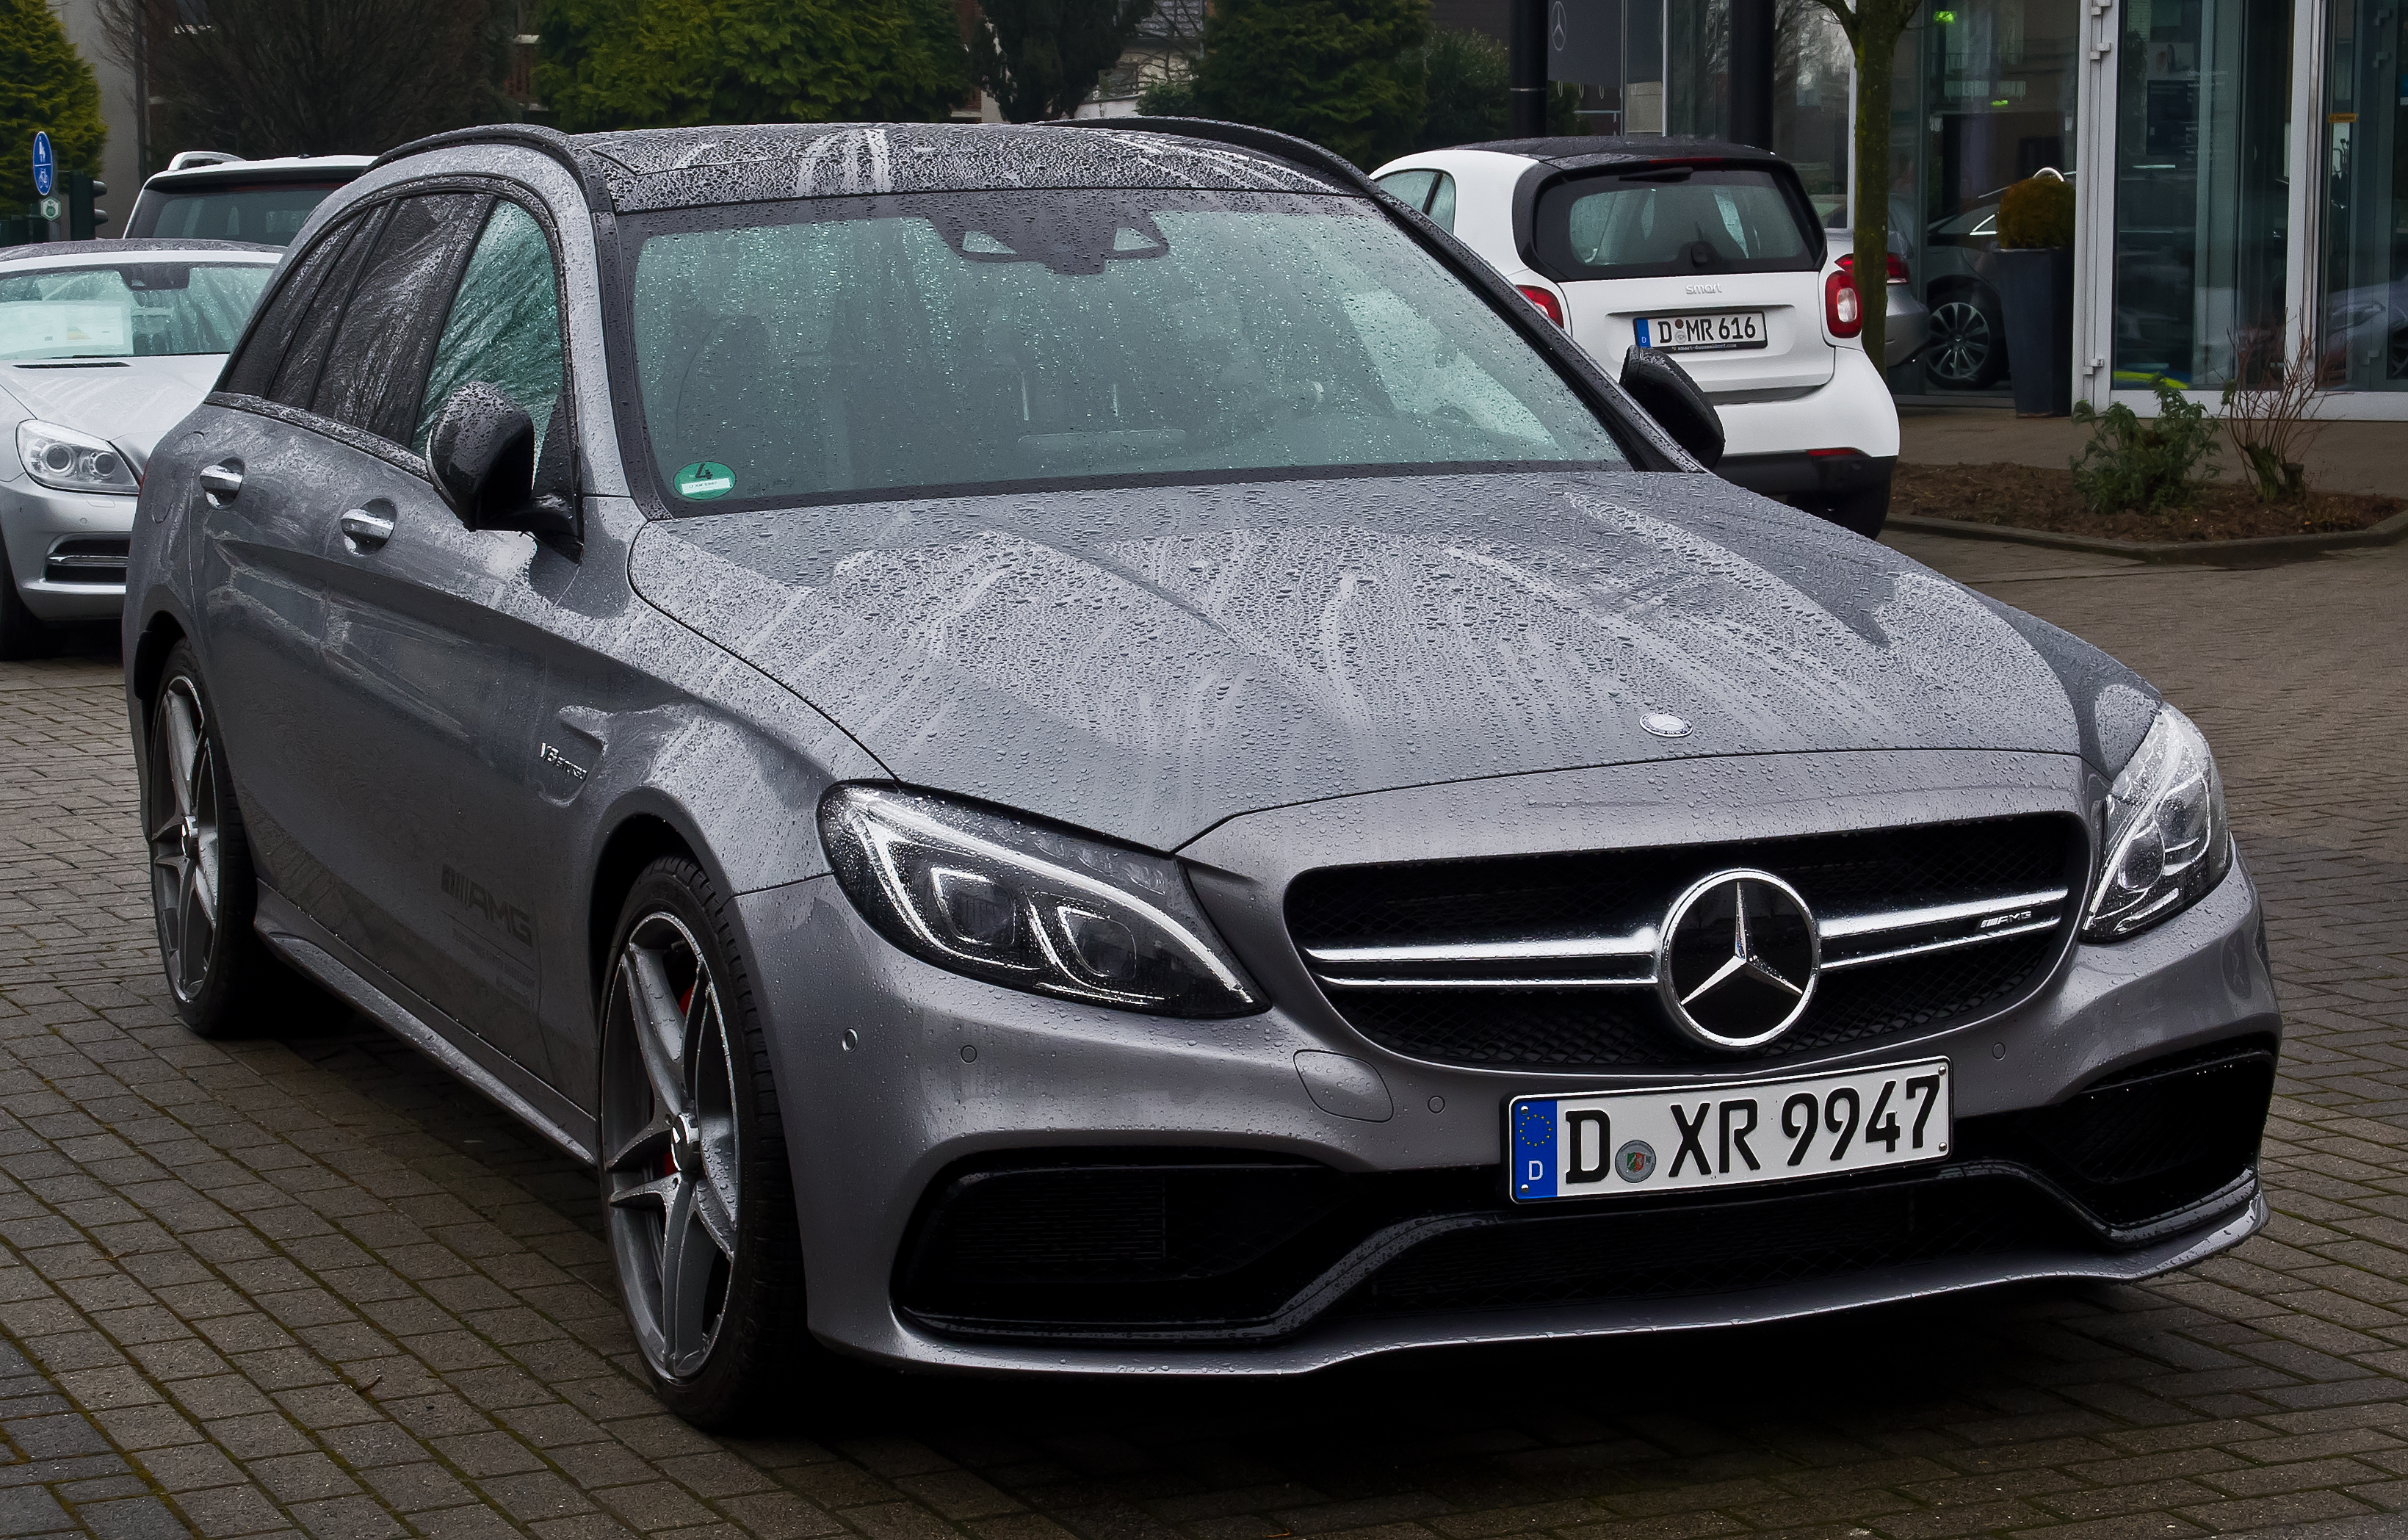 File:Mercedes-AMG C 63 S T-Modell (S 205) – Frontansicht ...